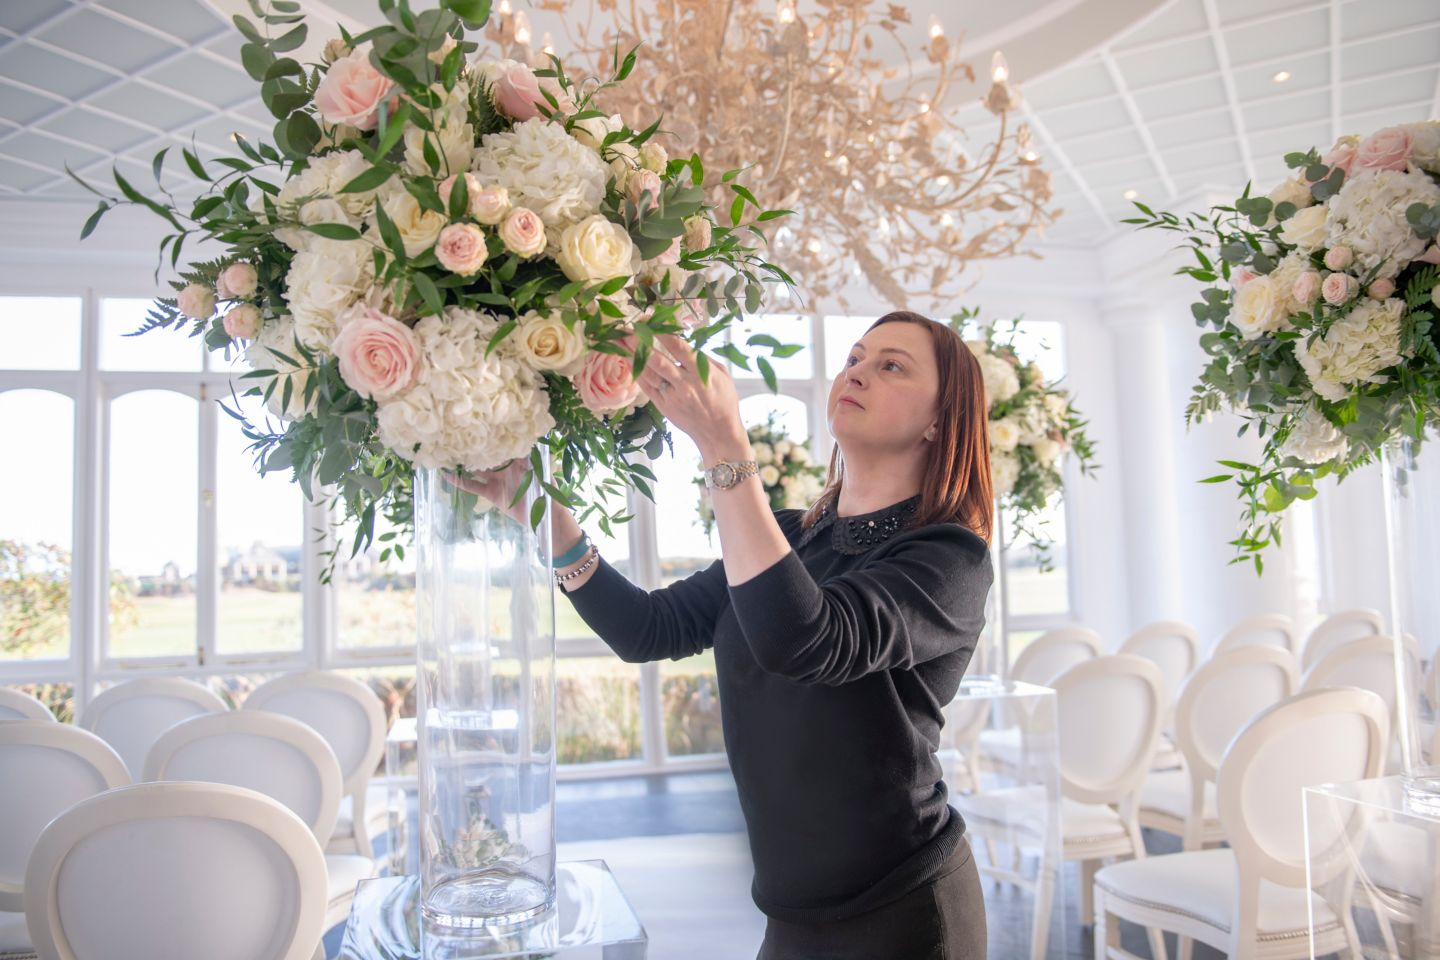 Laura Russell Wedding Events Manager, meet the team who will take care of your dream wedding.